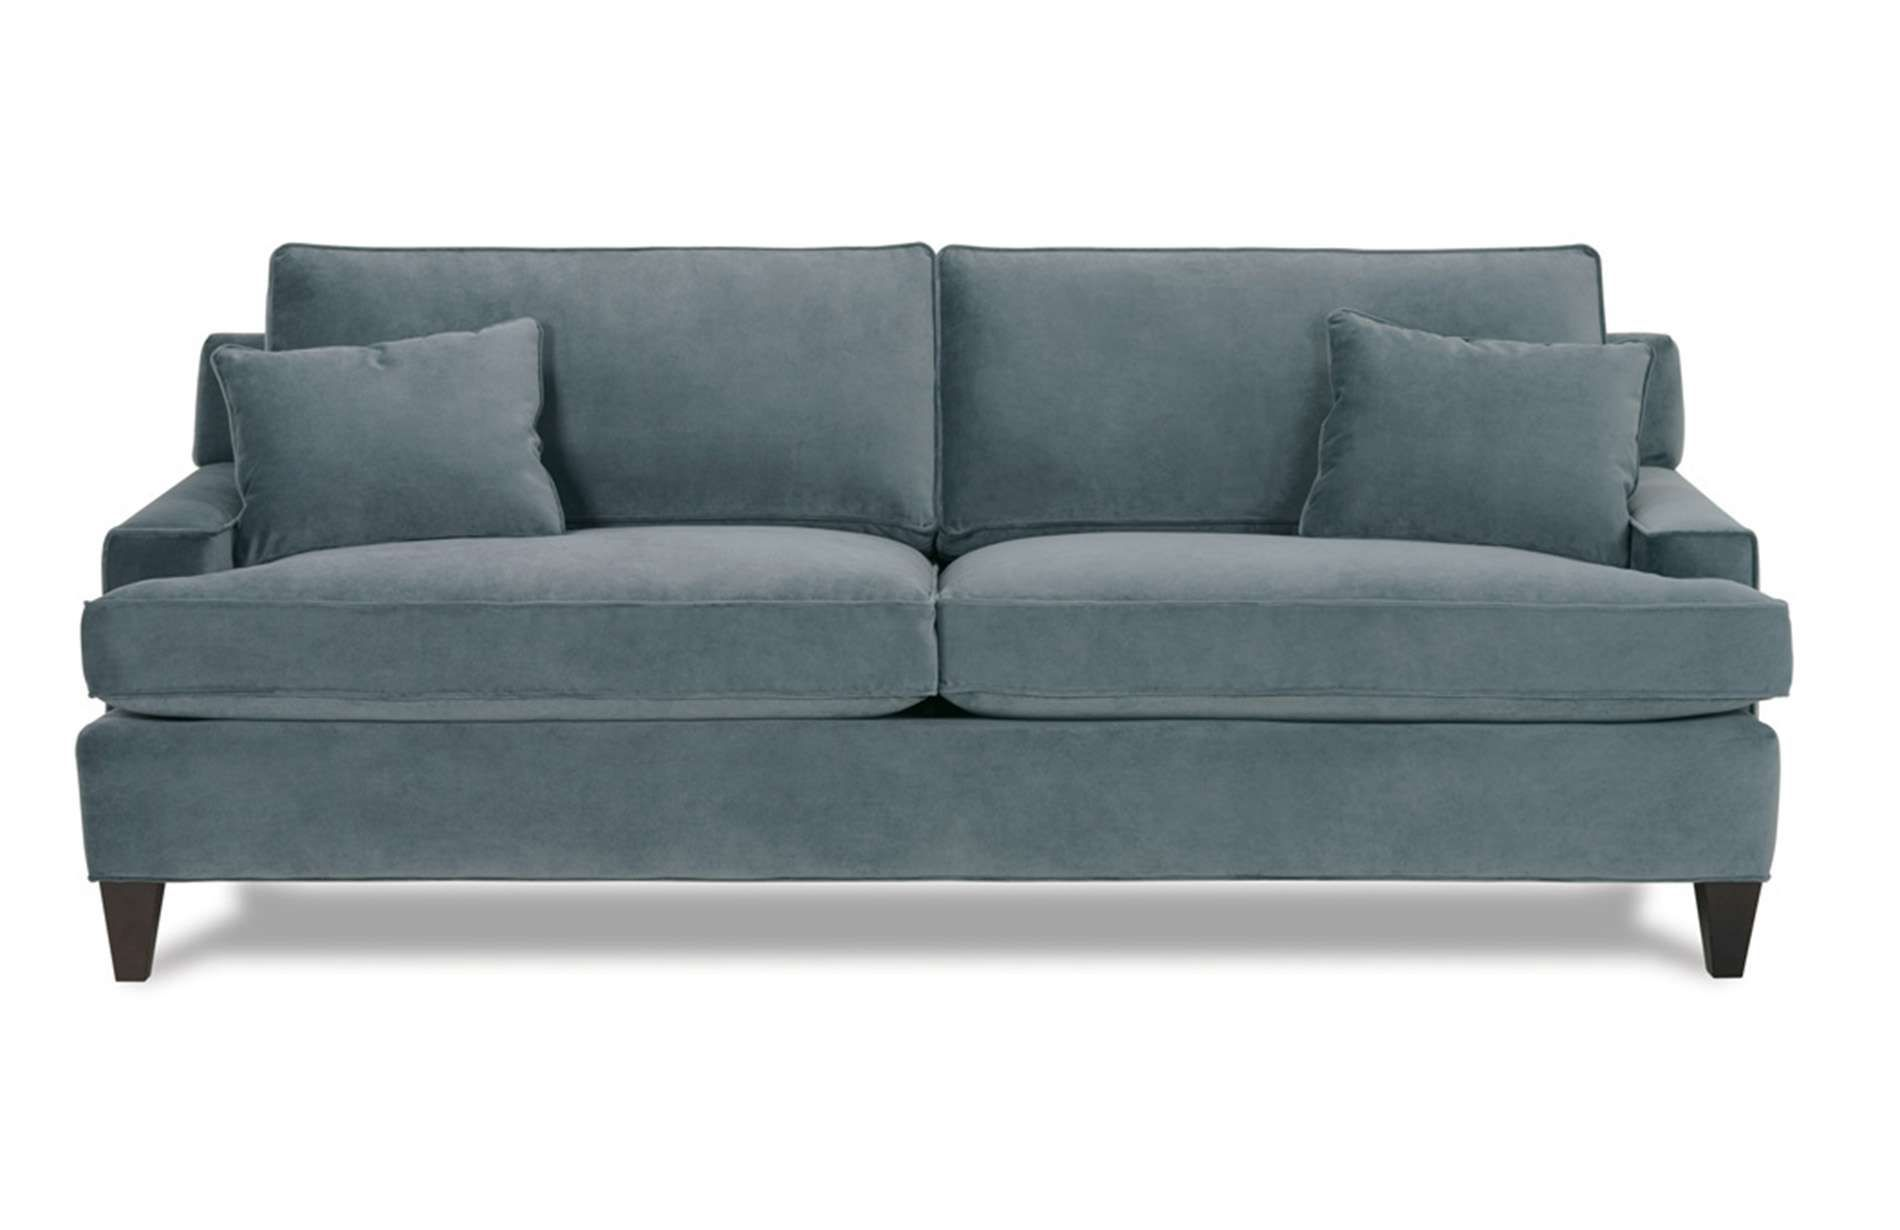 Wonderful The Mitchell Sofa Combines Elegance With Modern Style To Create An  Exquisite Design From Rowe Furniture. Customize The Body And Pillows Here.